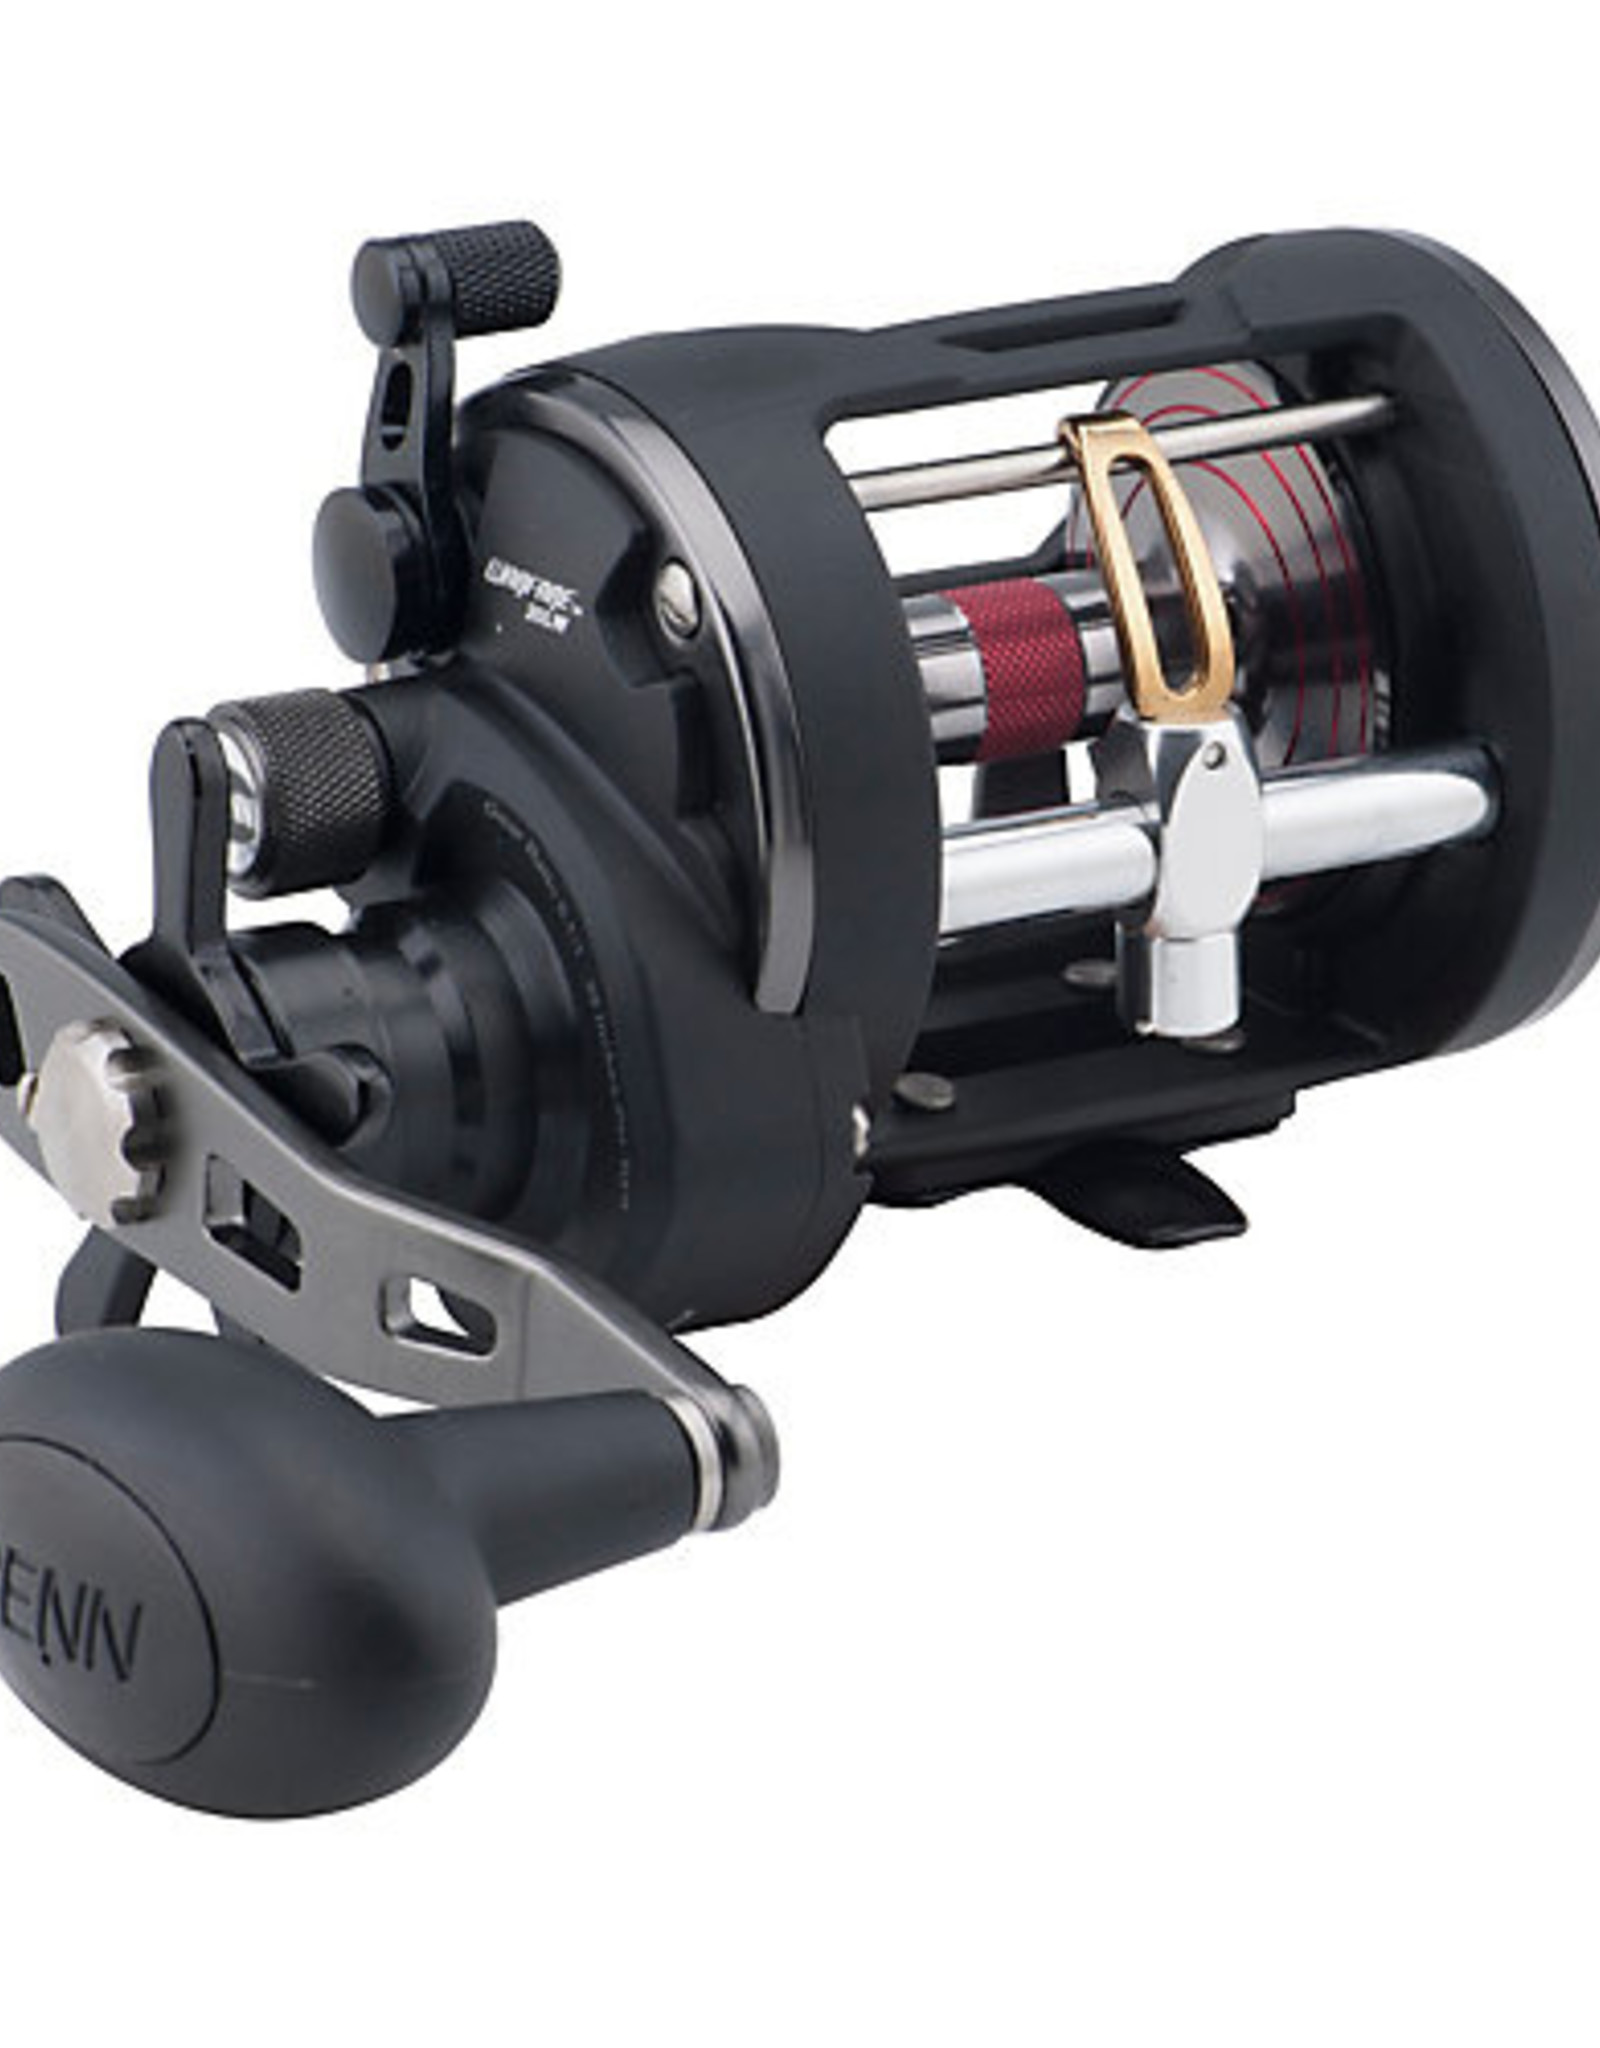 Penn Penn WAR20LW Warfare Level Wind Reel, RH, 3BB, 5.1:1 Ratio, Alum